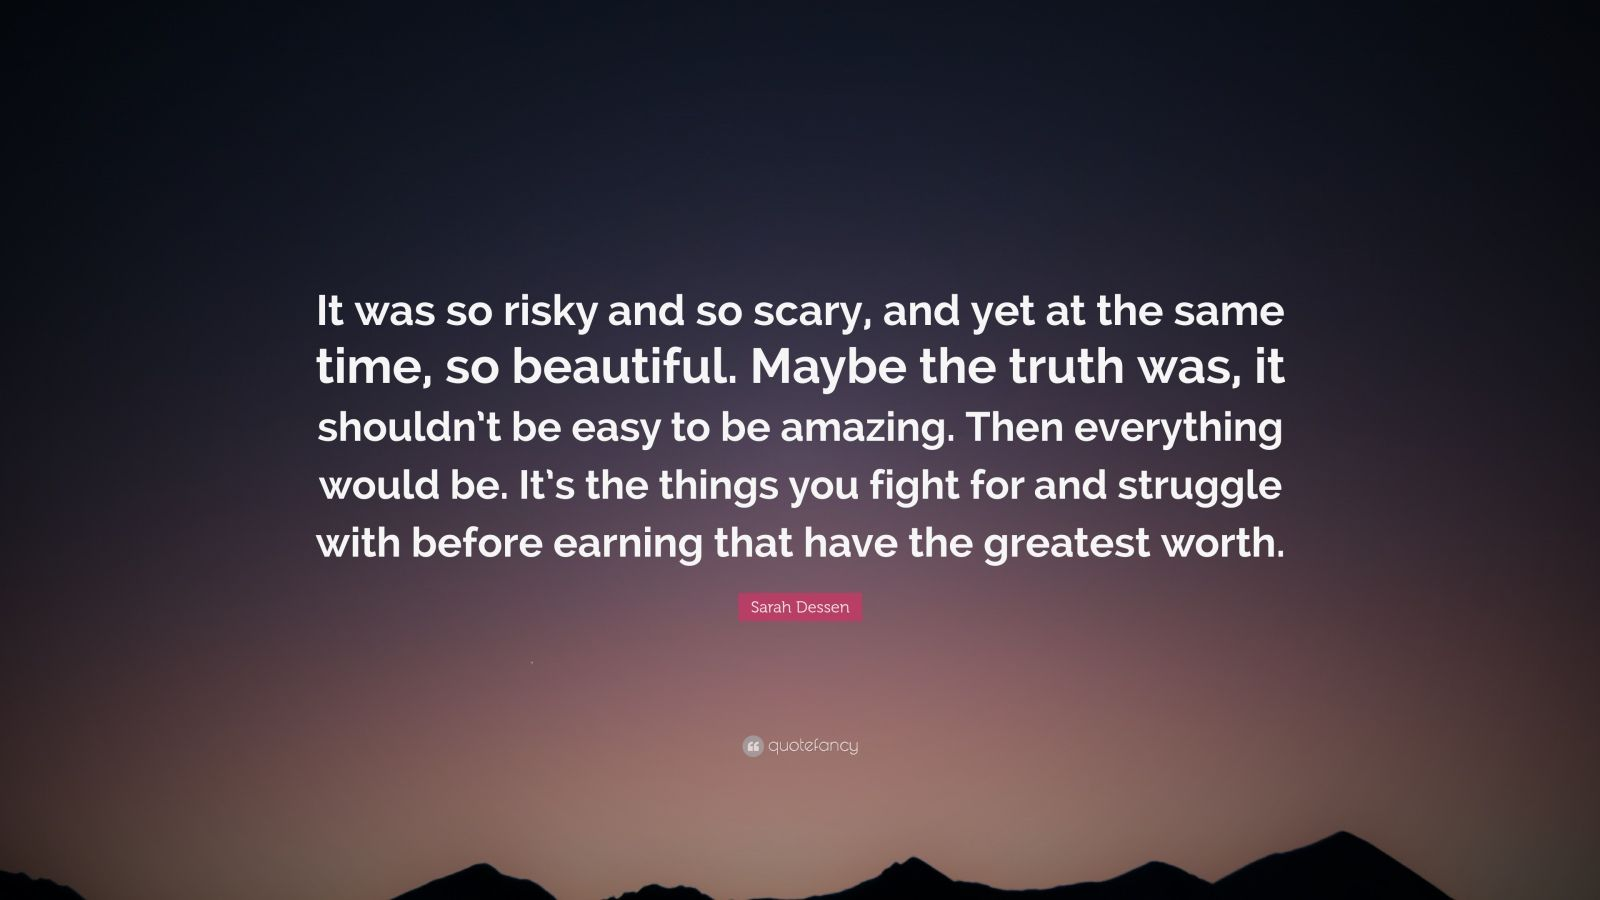 "Sarah Dessen Quote: ""It was so risky and so scary, and yet at the same time, so beautiful. Maybe the truth was, it shouldn't be easy to be amazing. Then everything would be. It's the things you fight for and struggle with before earning that have the greatest worth."""